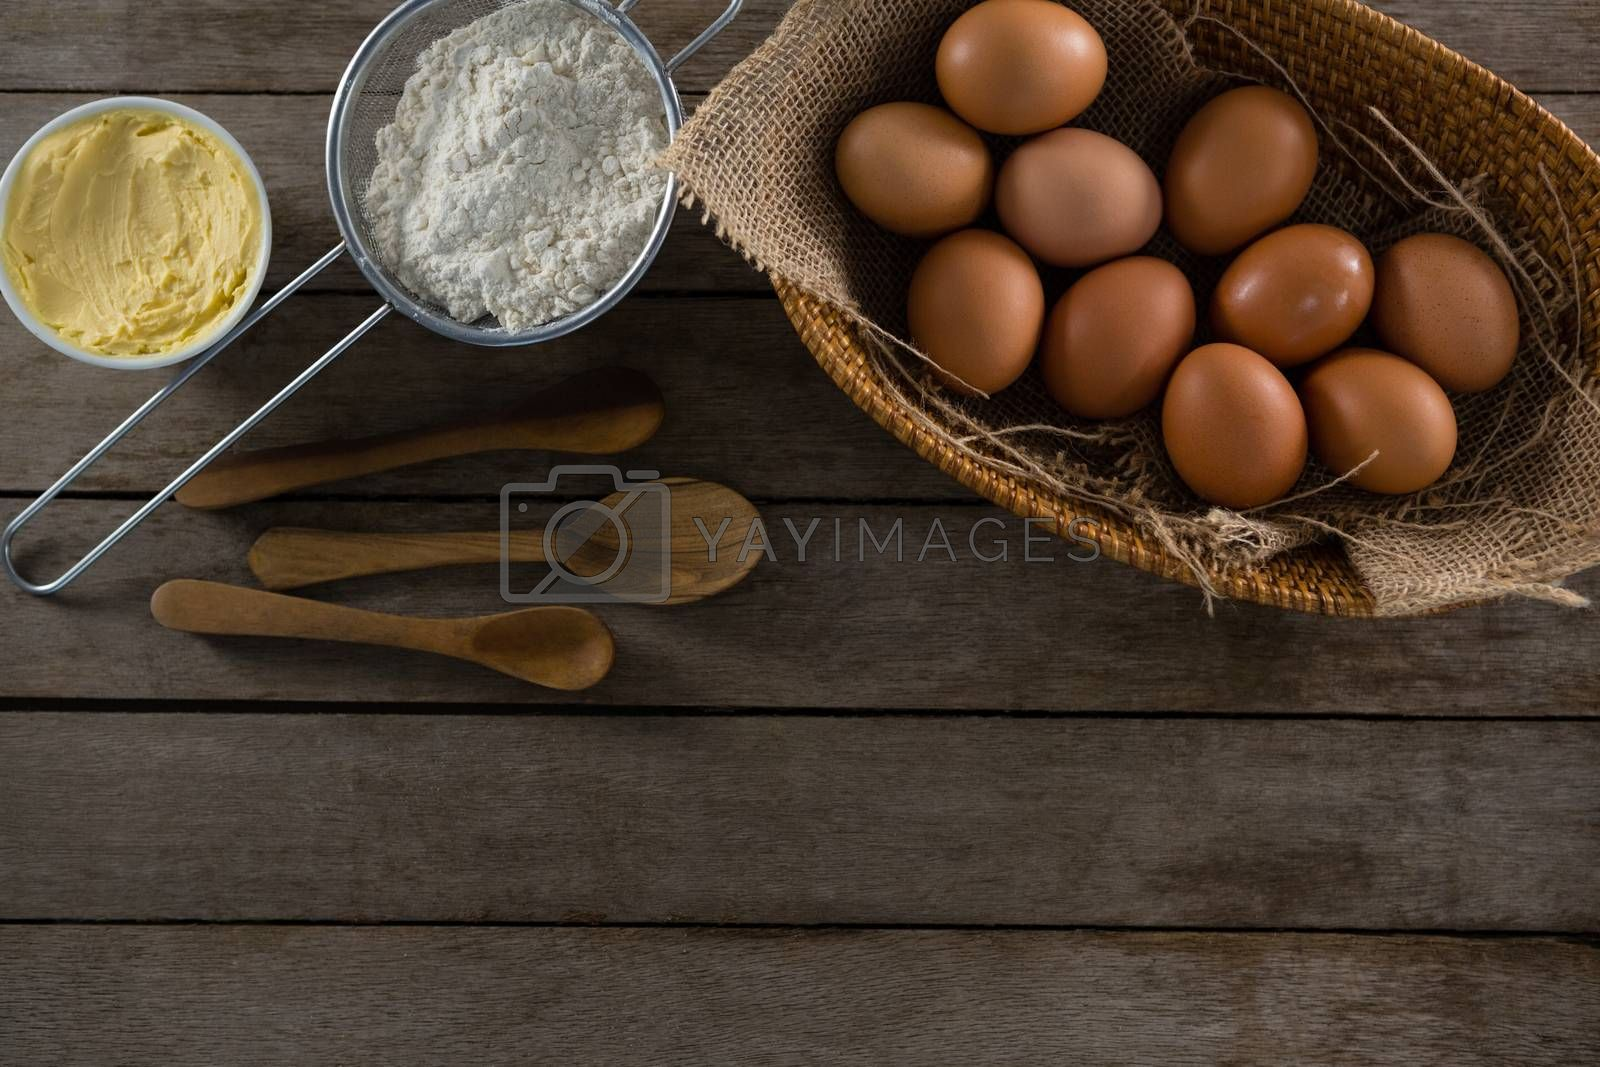 Various ingredients on a wooden table by Wavebreakmedia